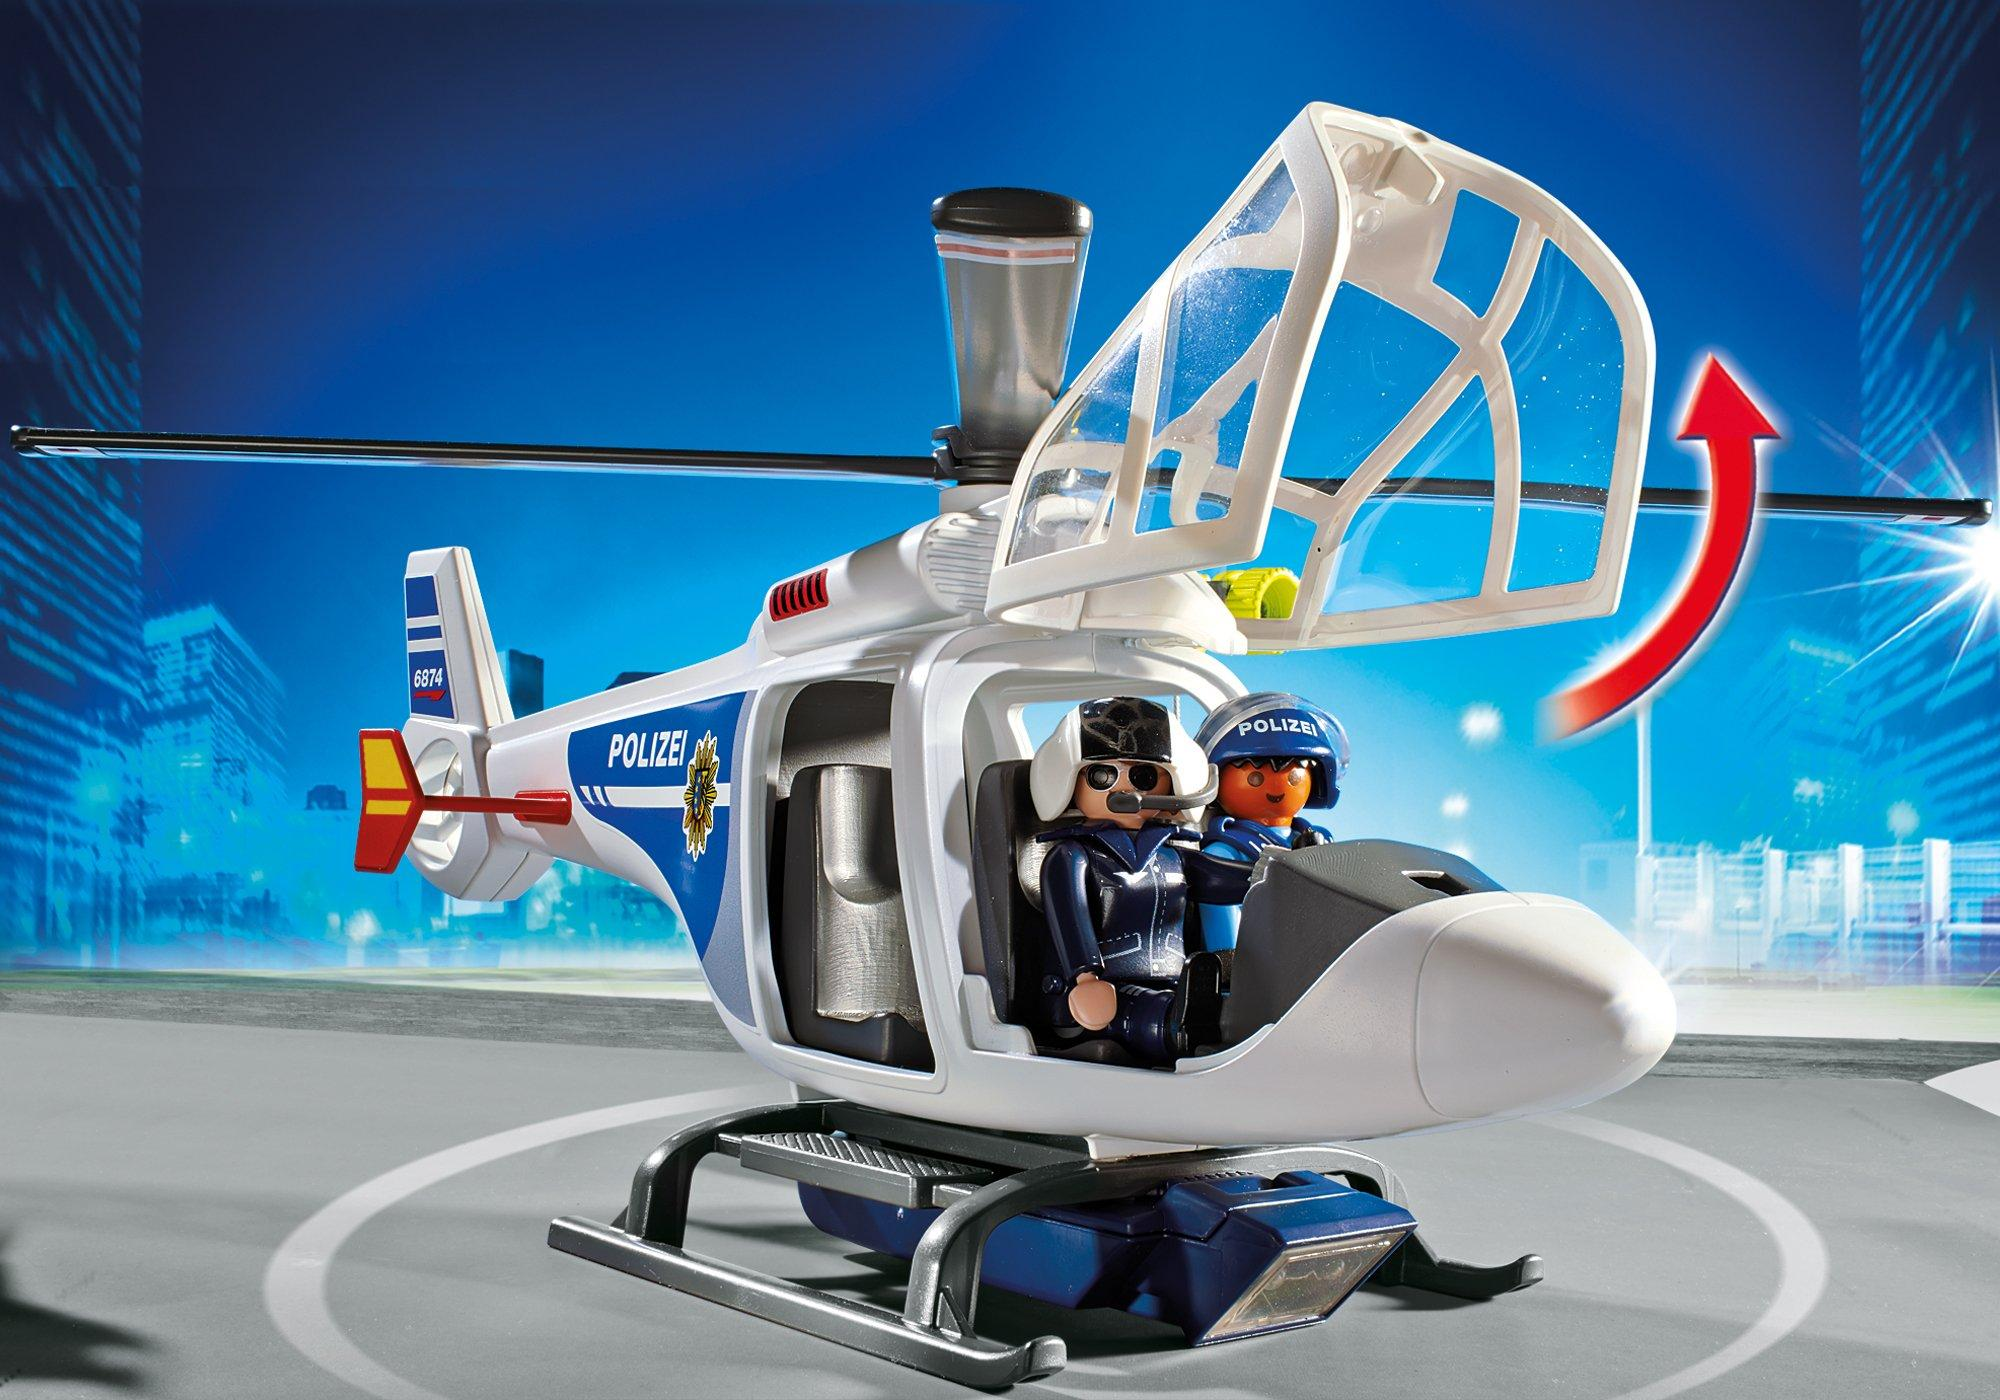 http://media.playmobil.com/i/playmobil/6874_product_extra1